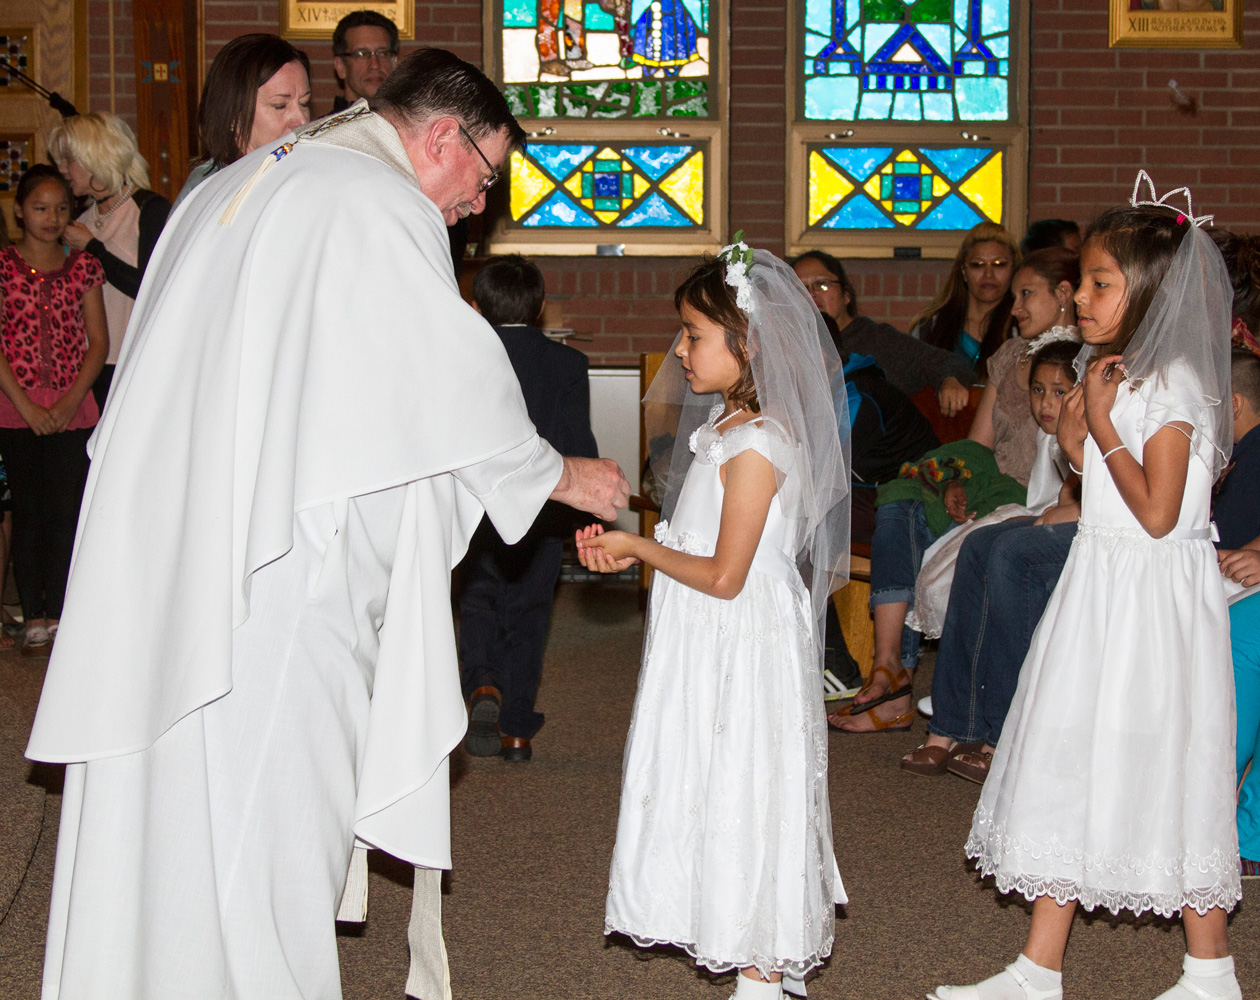 Fr. Anthony gives a Lakota child her First Holy Communion.